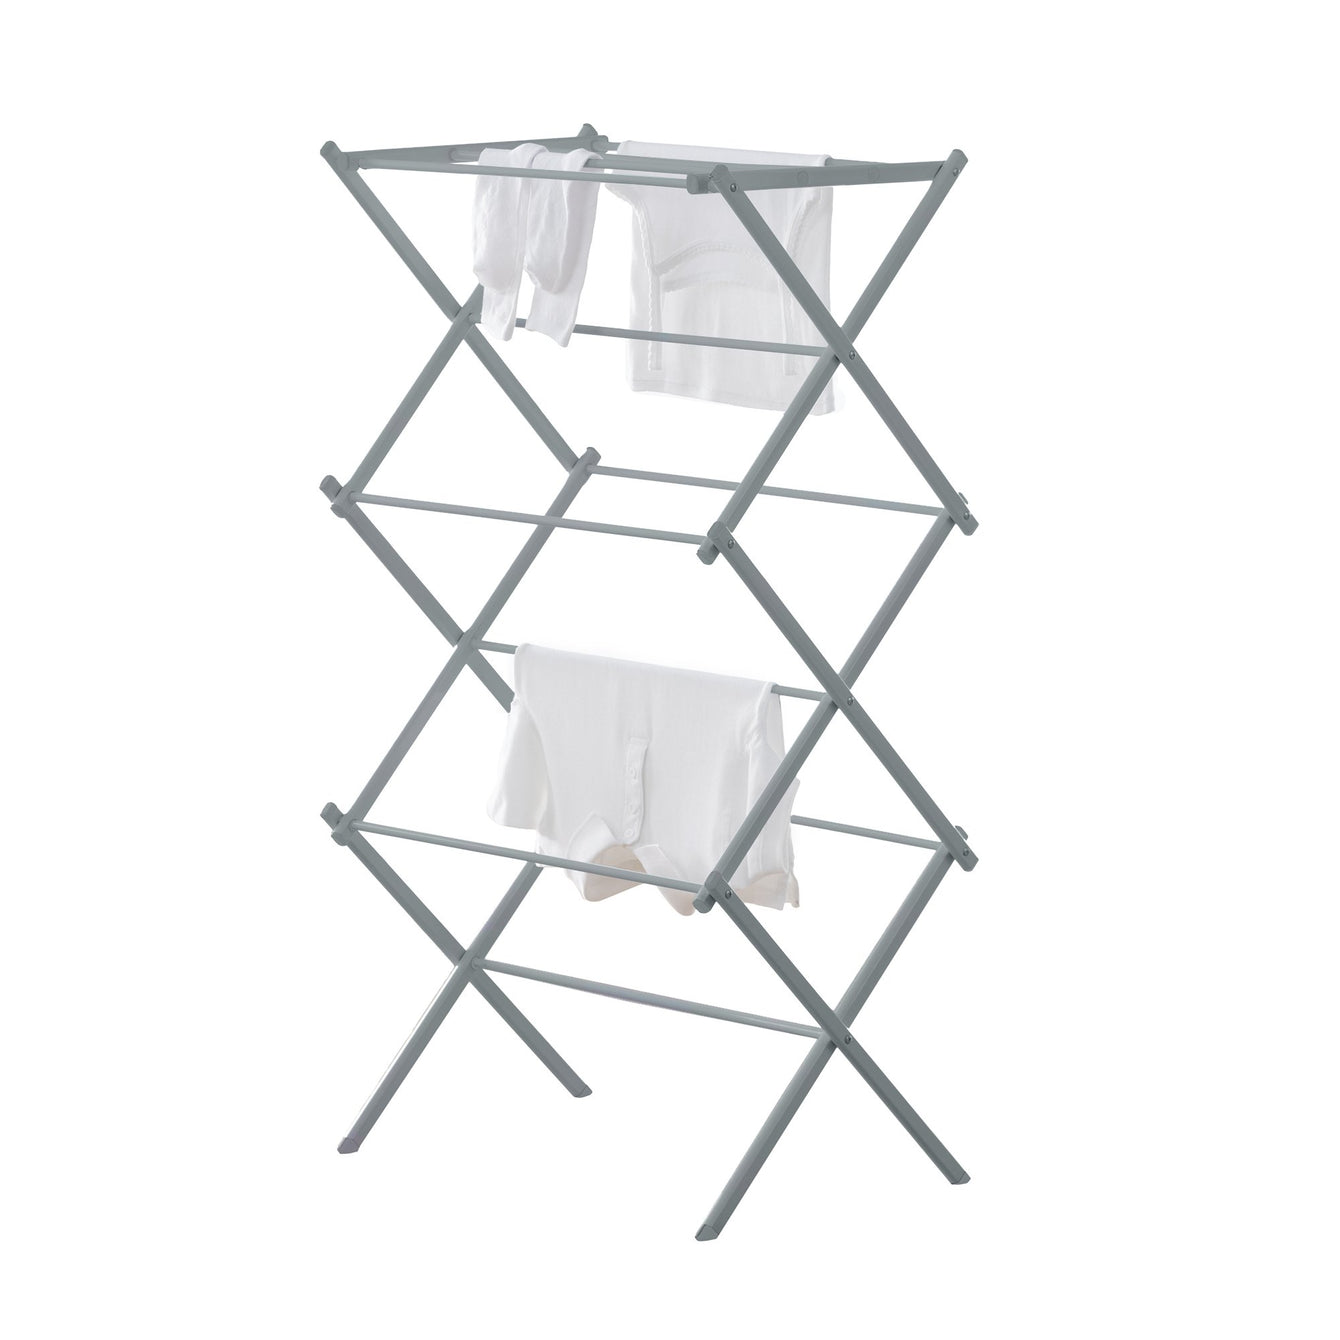 Compact Folding Laundry Drying Rack - Silver Metallic - Style 5529